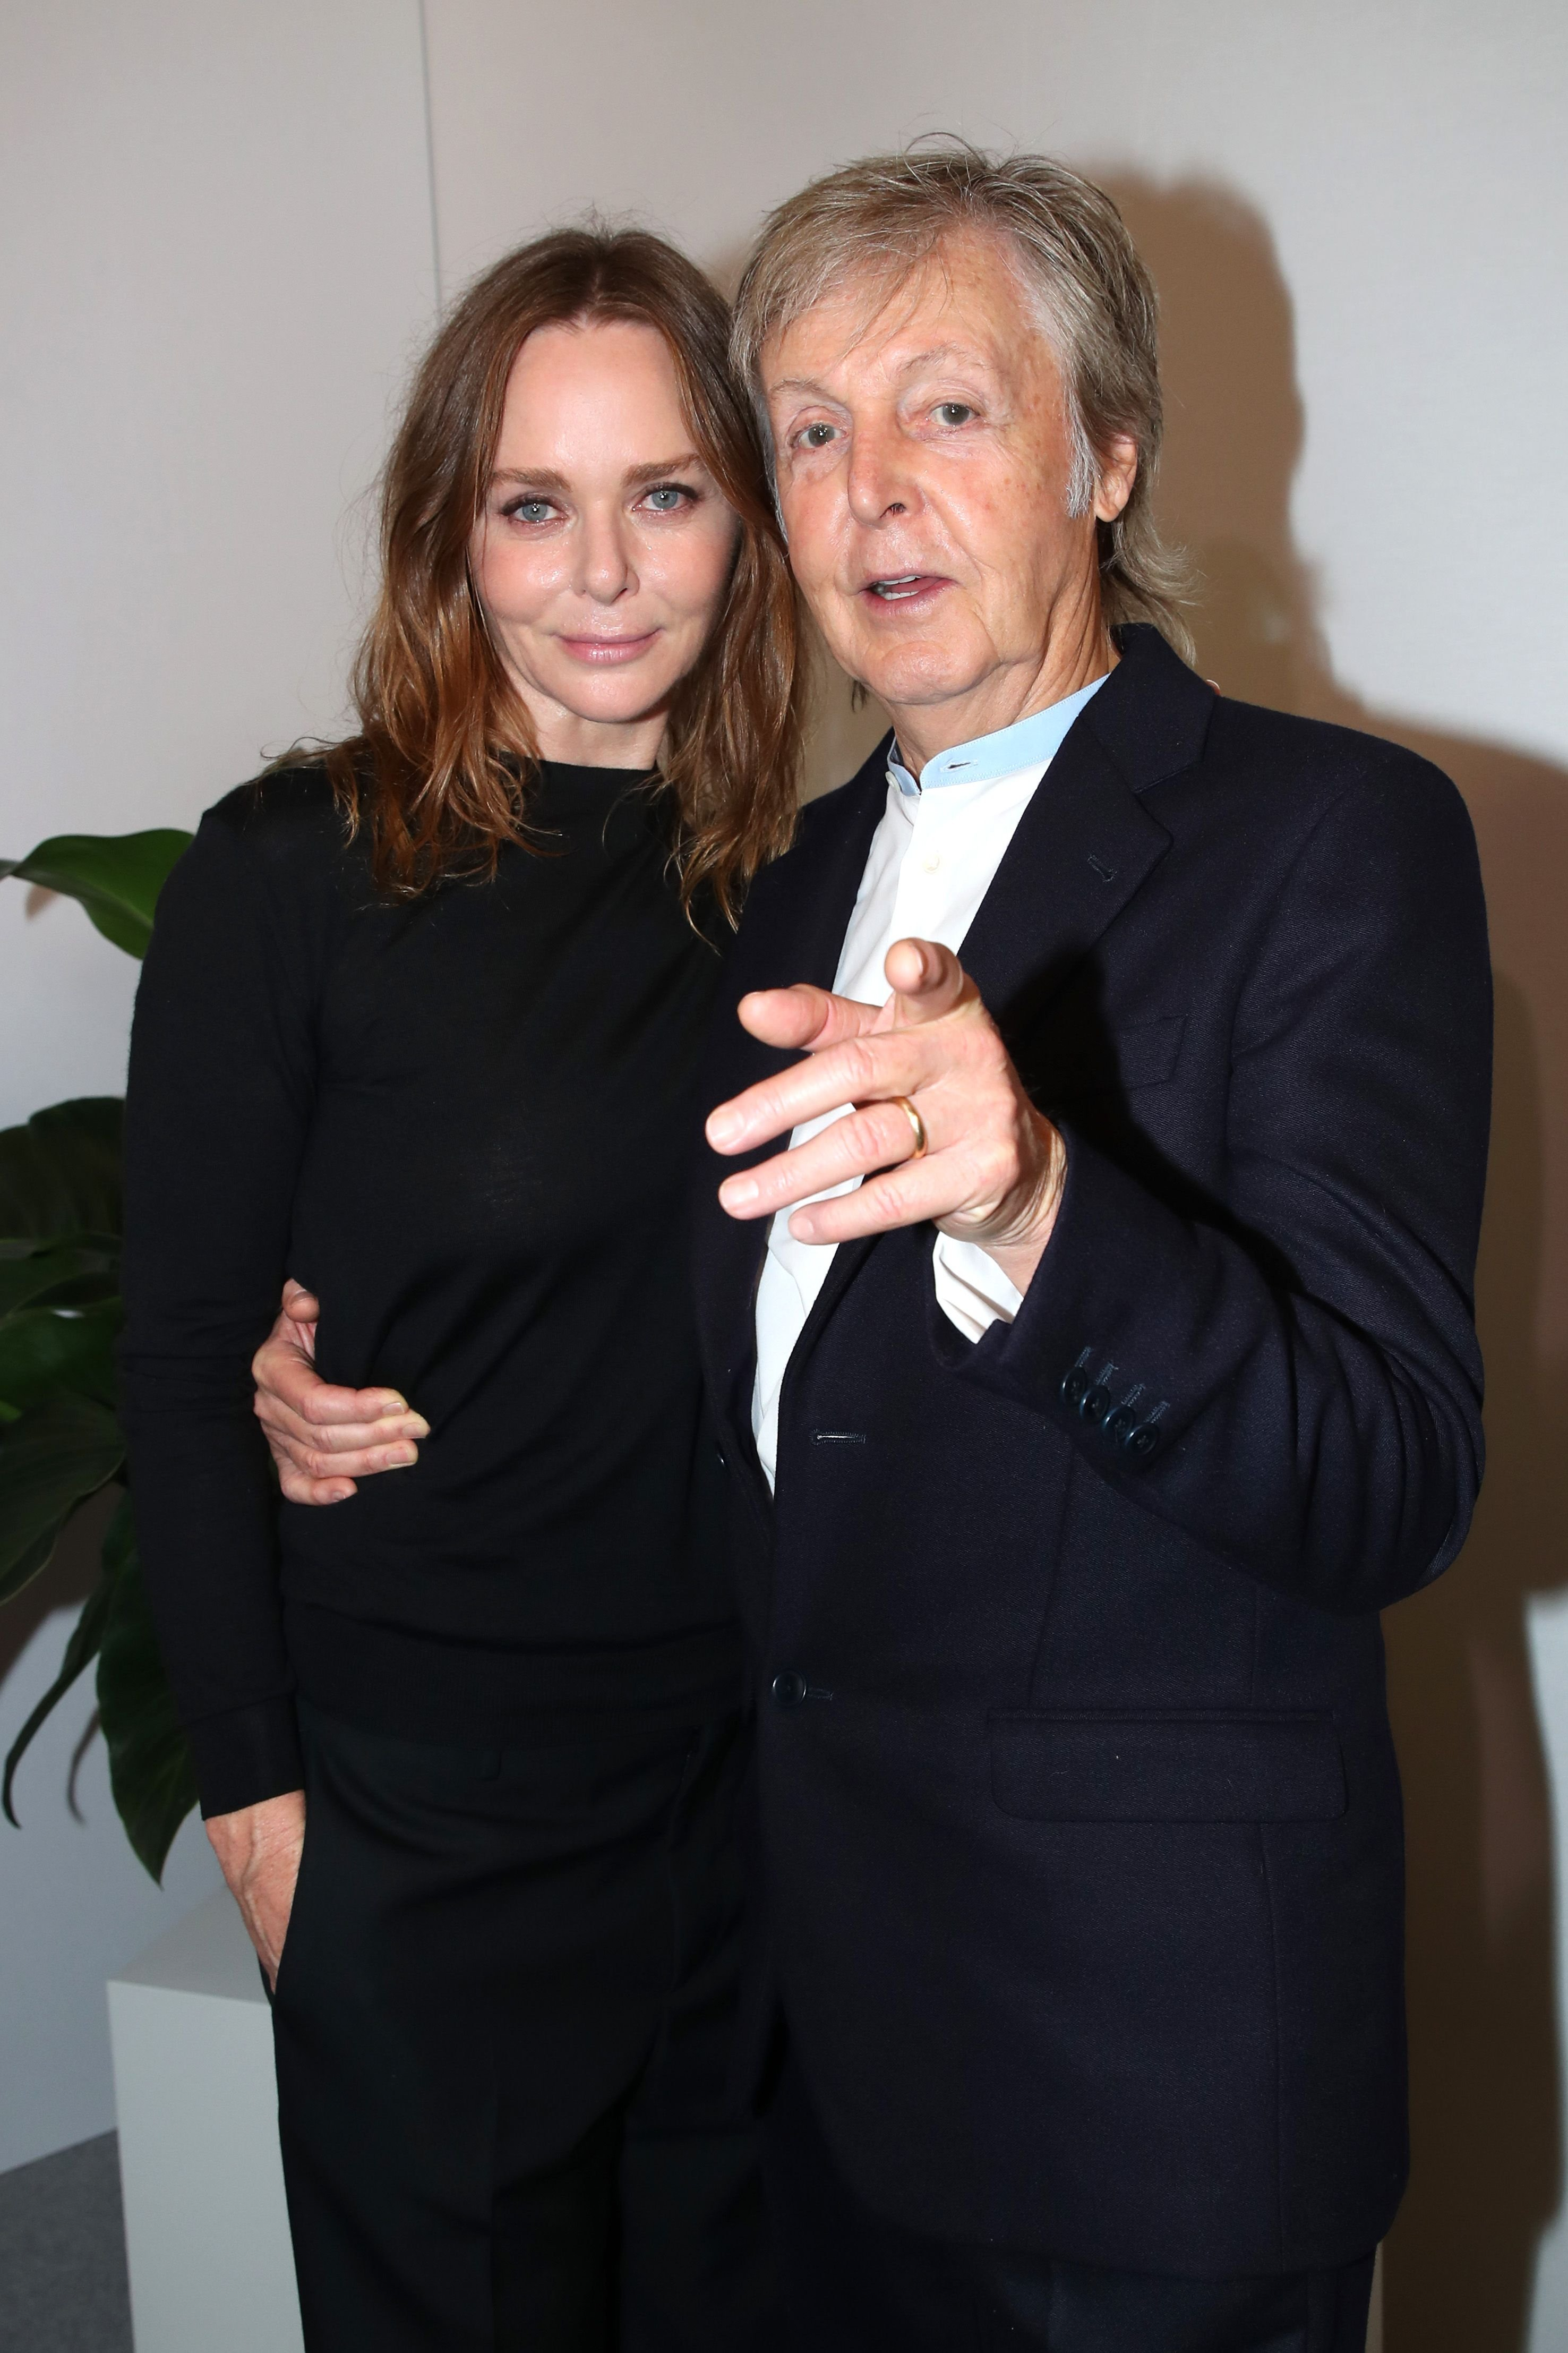 Stylist Stella McCartney and her father Paul McCartney pose after the Stella McCartney Womenswear Spring/Summer 2020 show as part of Paris Fashion Week on September 30, 2019 in Paris, France.   Source: Getty Images